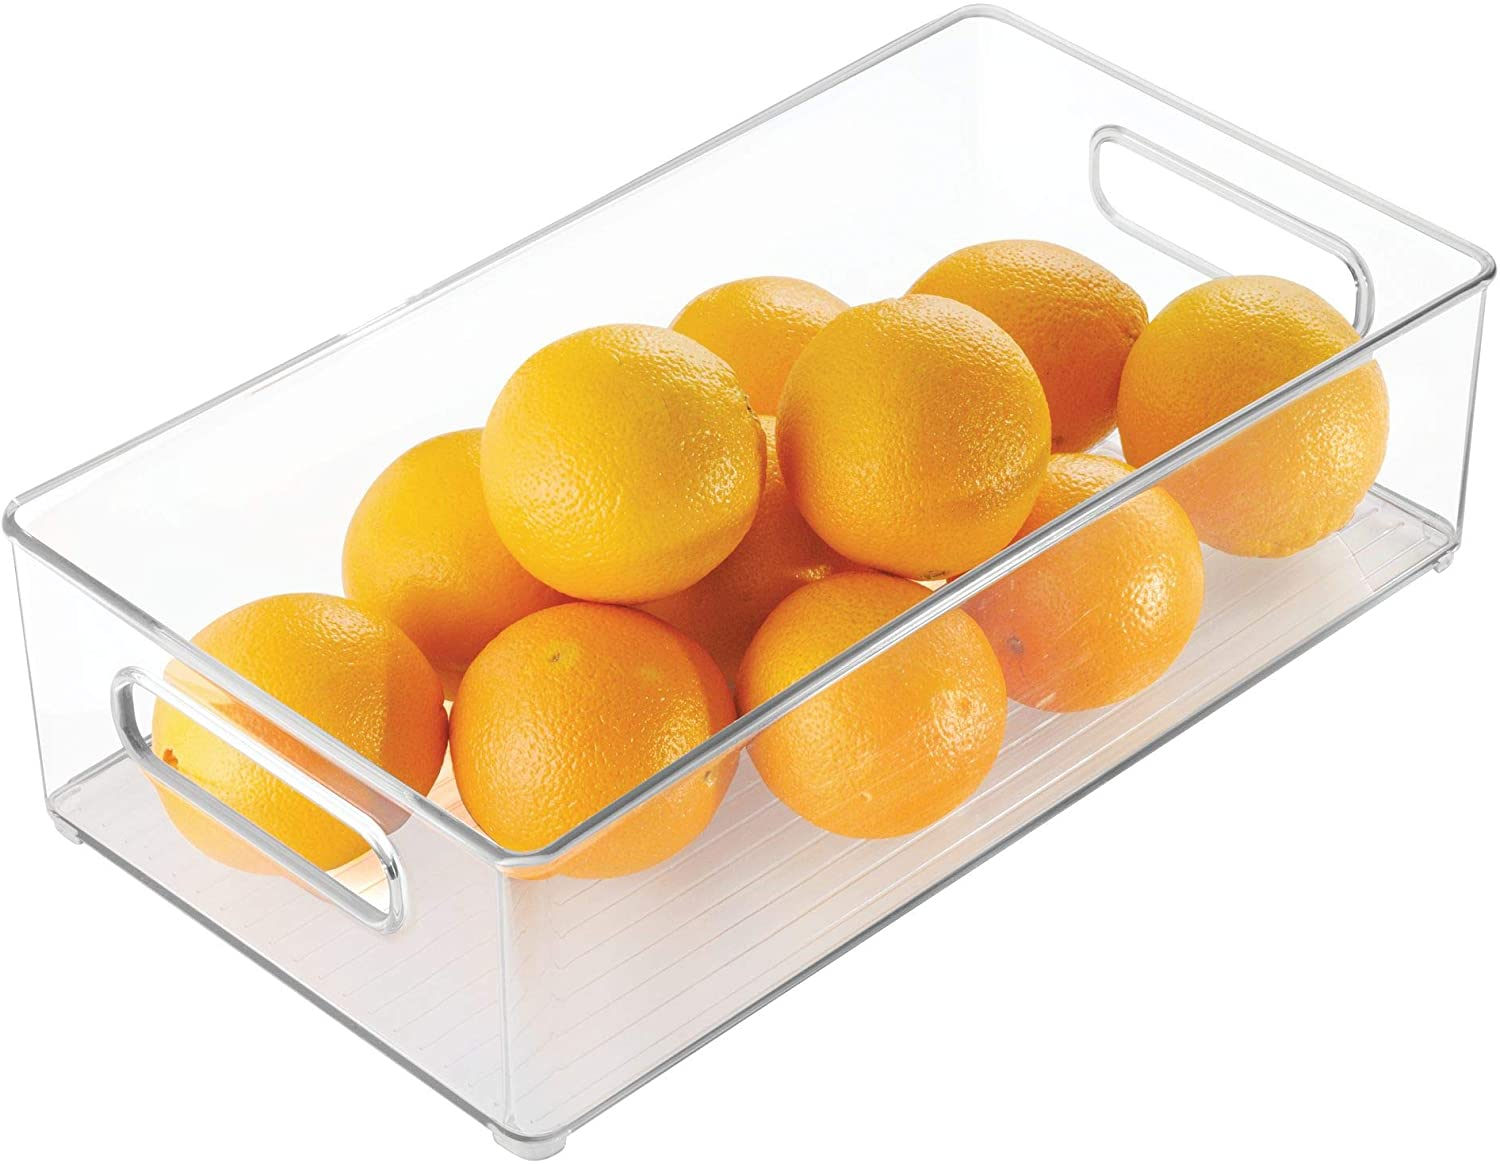 Refrigerator Storage Bins with Handle